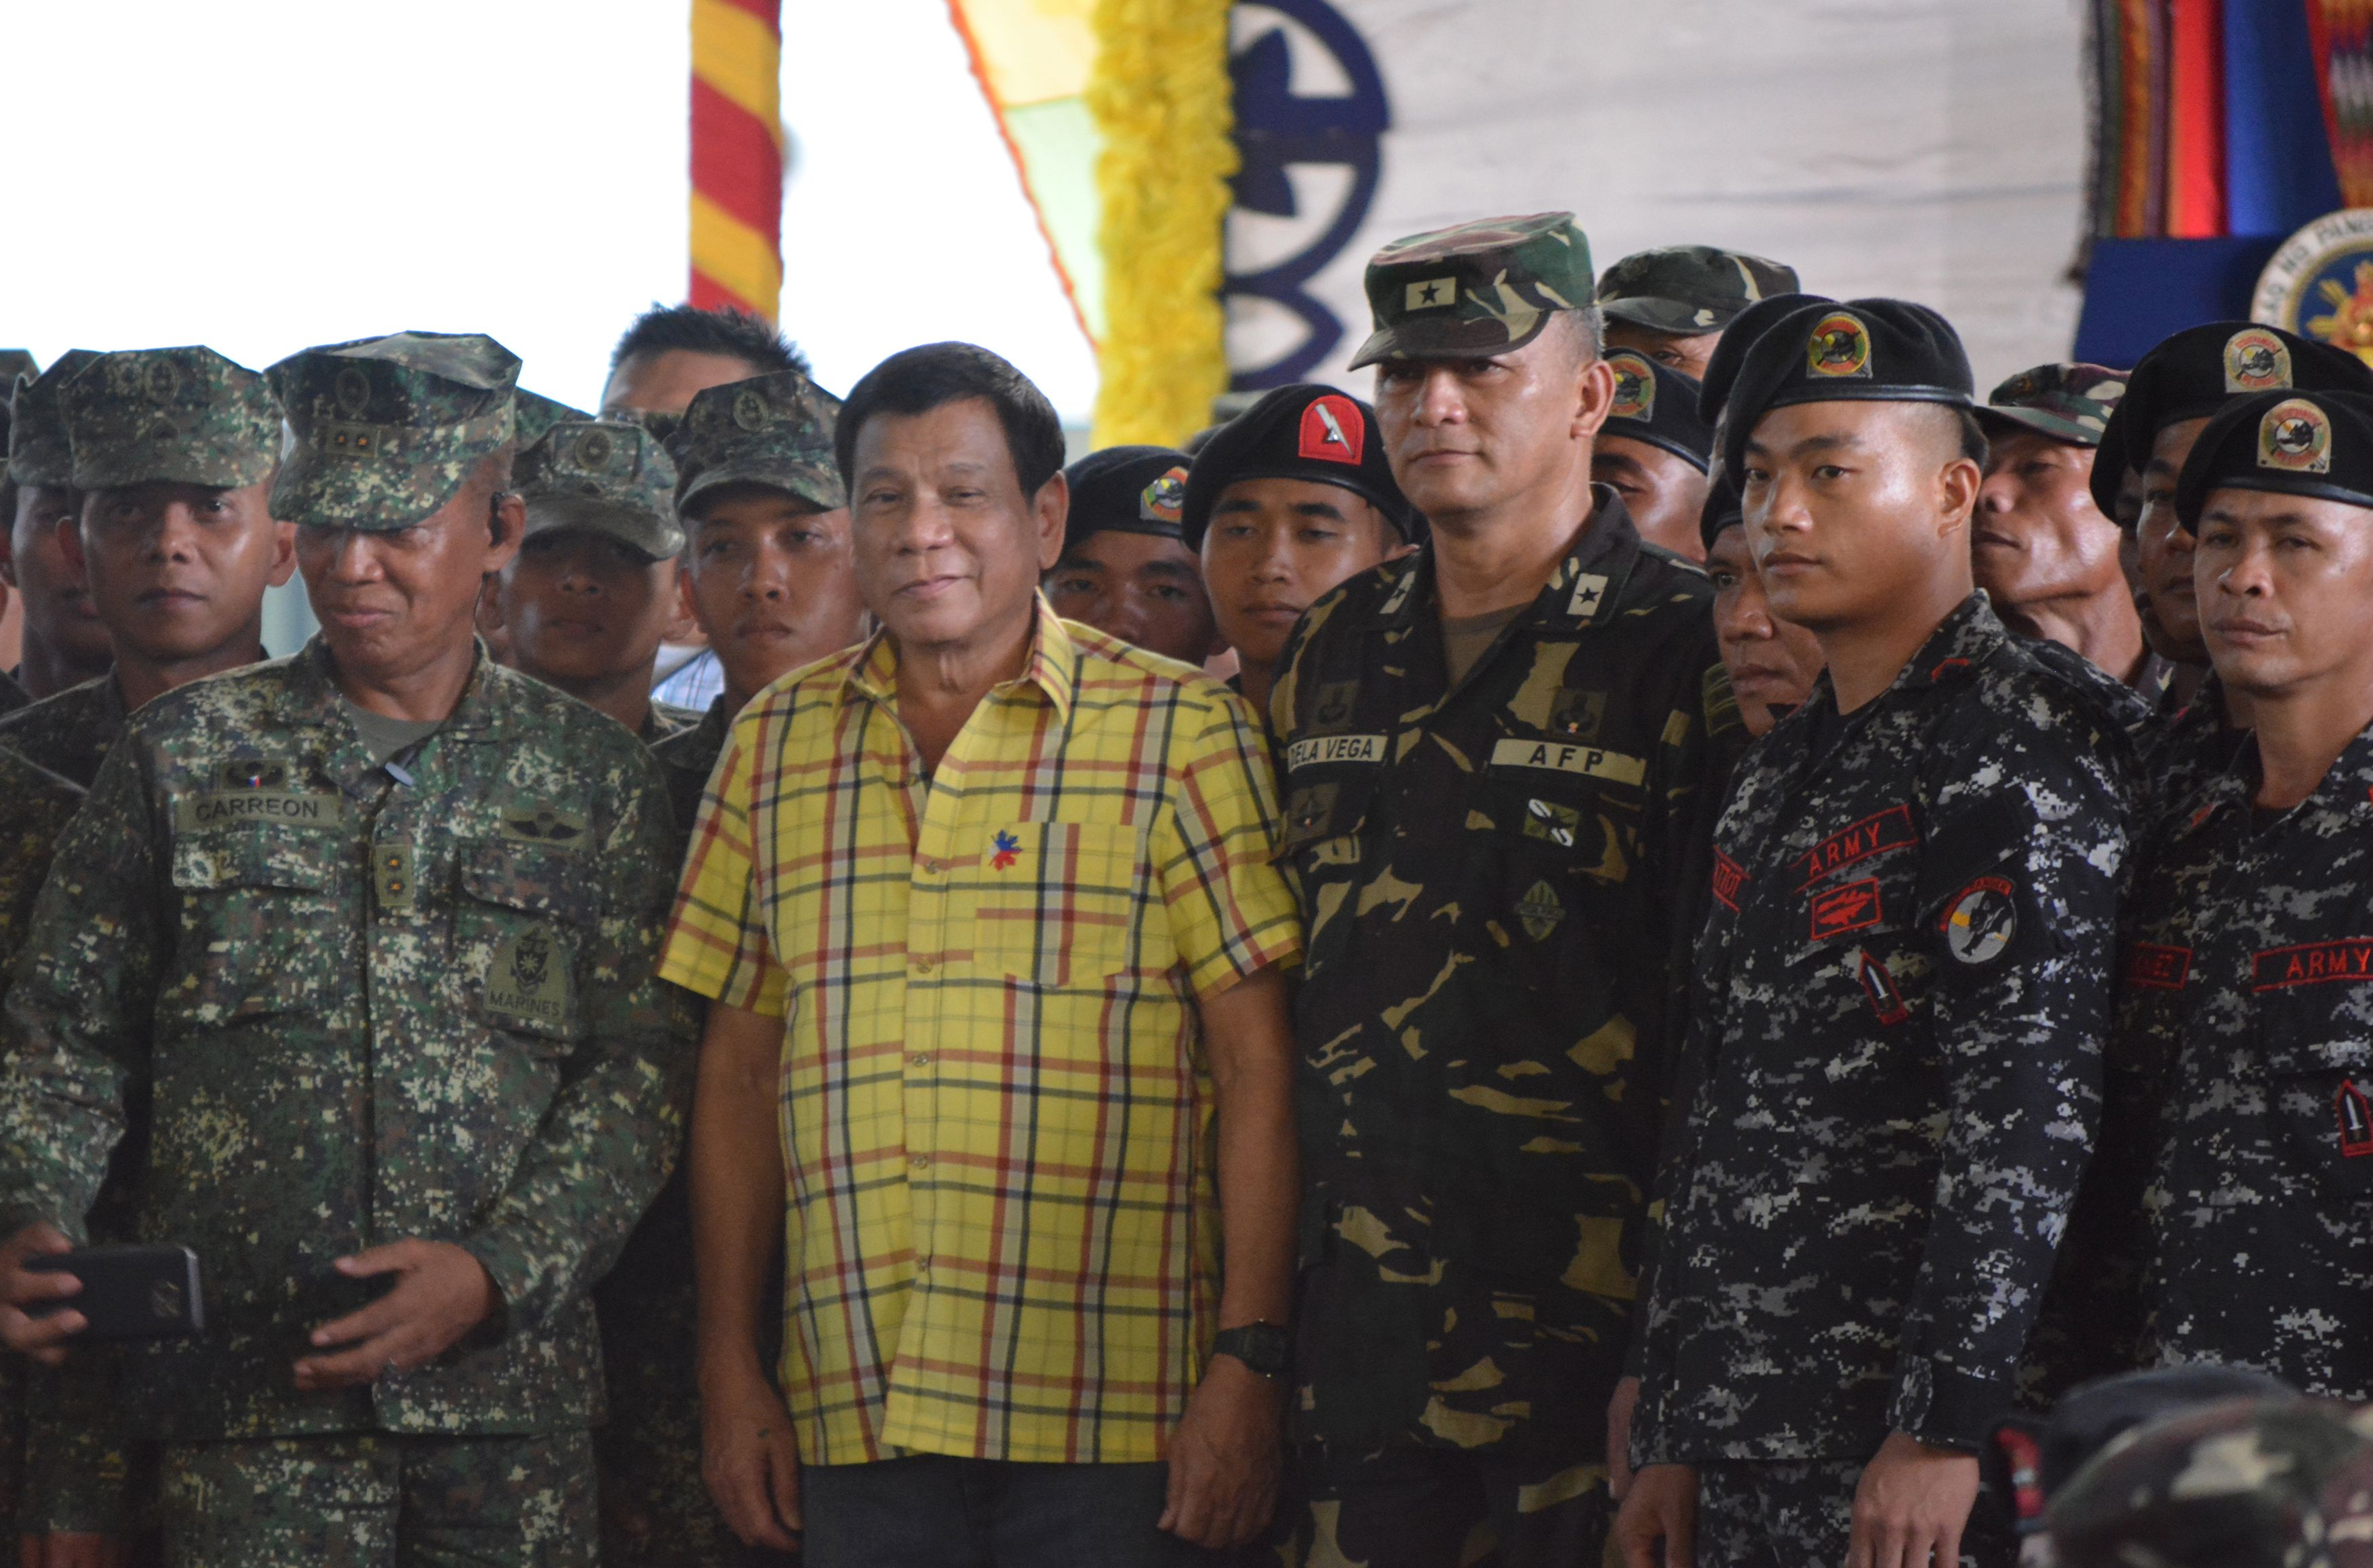 Philippine President Rodrigo Duterte, center left, poses with military personnel during a visit to a military camp in the Philippine town of Jolo, Sulu province, in the southern island of Mindanao, on Aug. 12, 2016